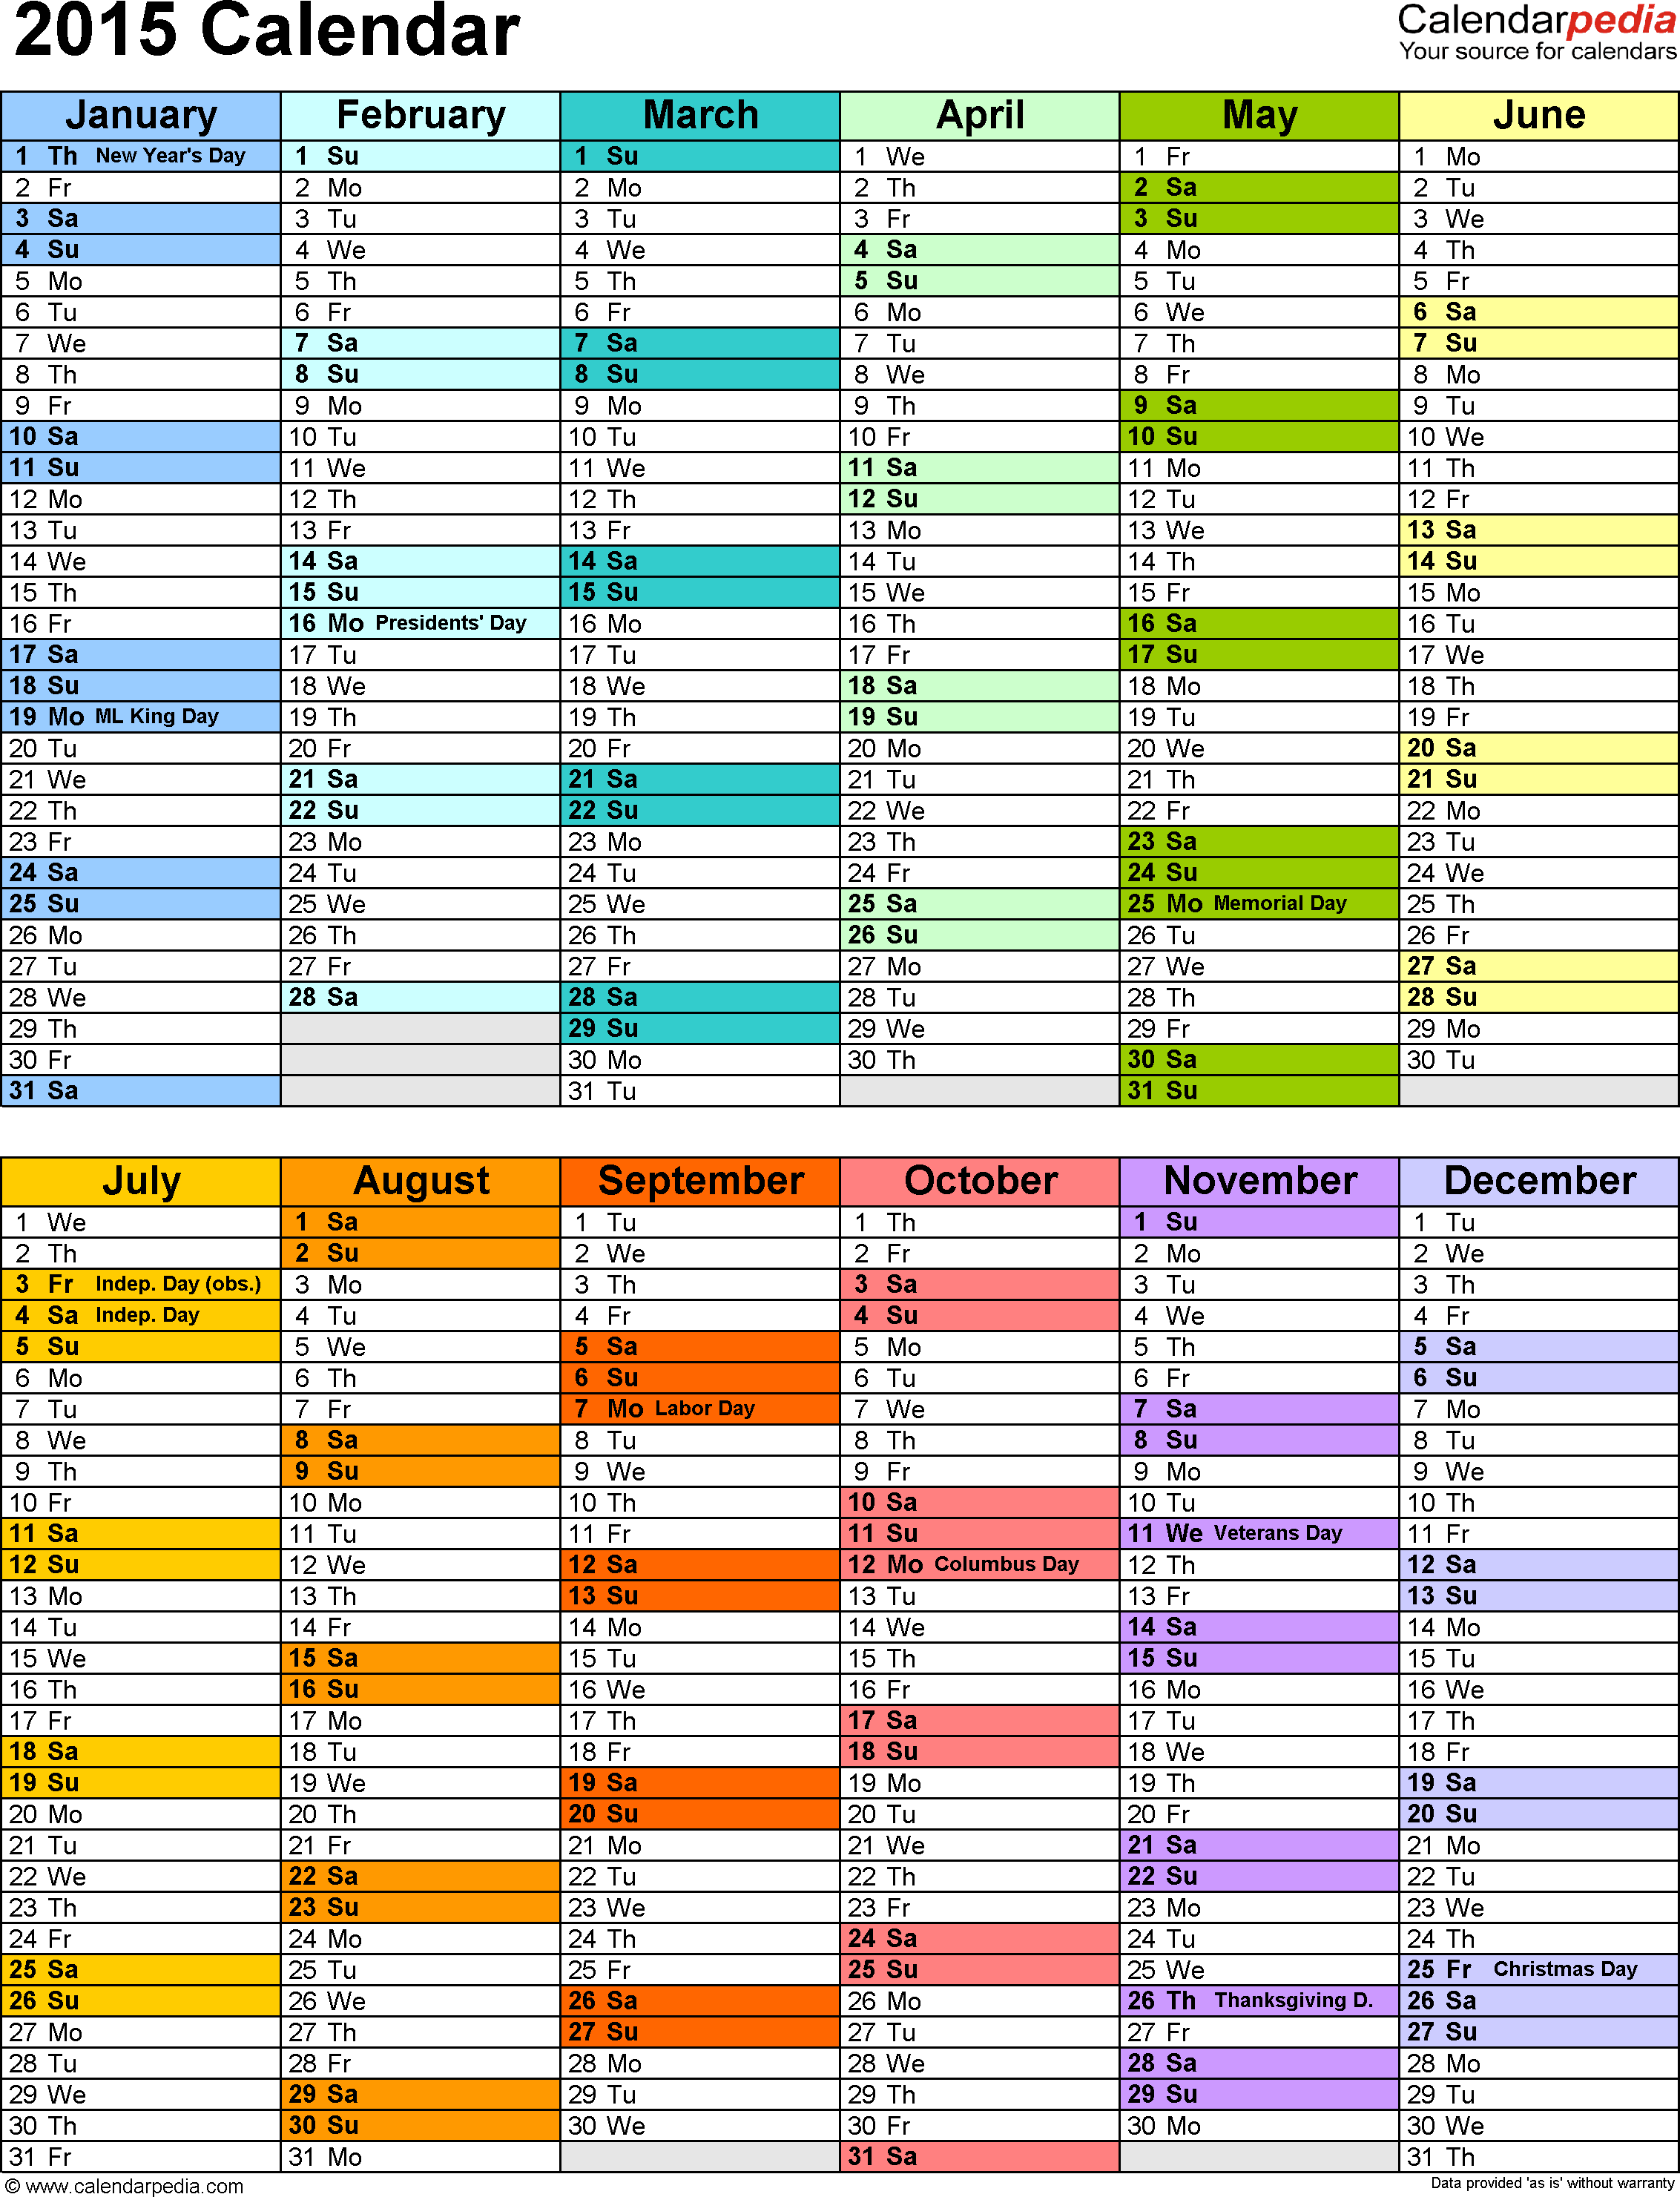 2015 Calendar Excel - Download 16 free printable templates (.xlsx)